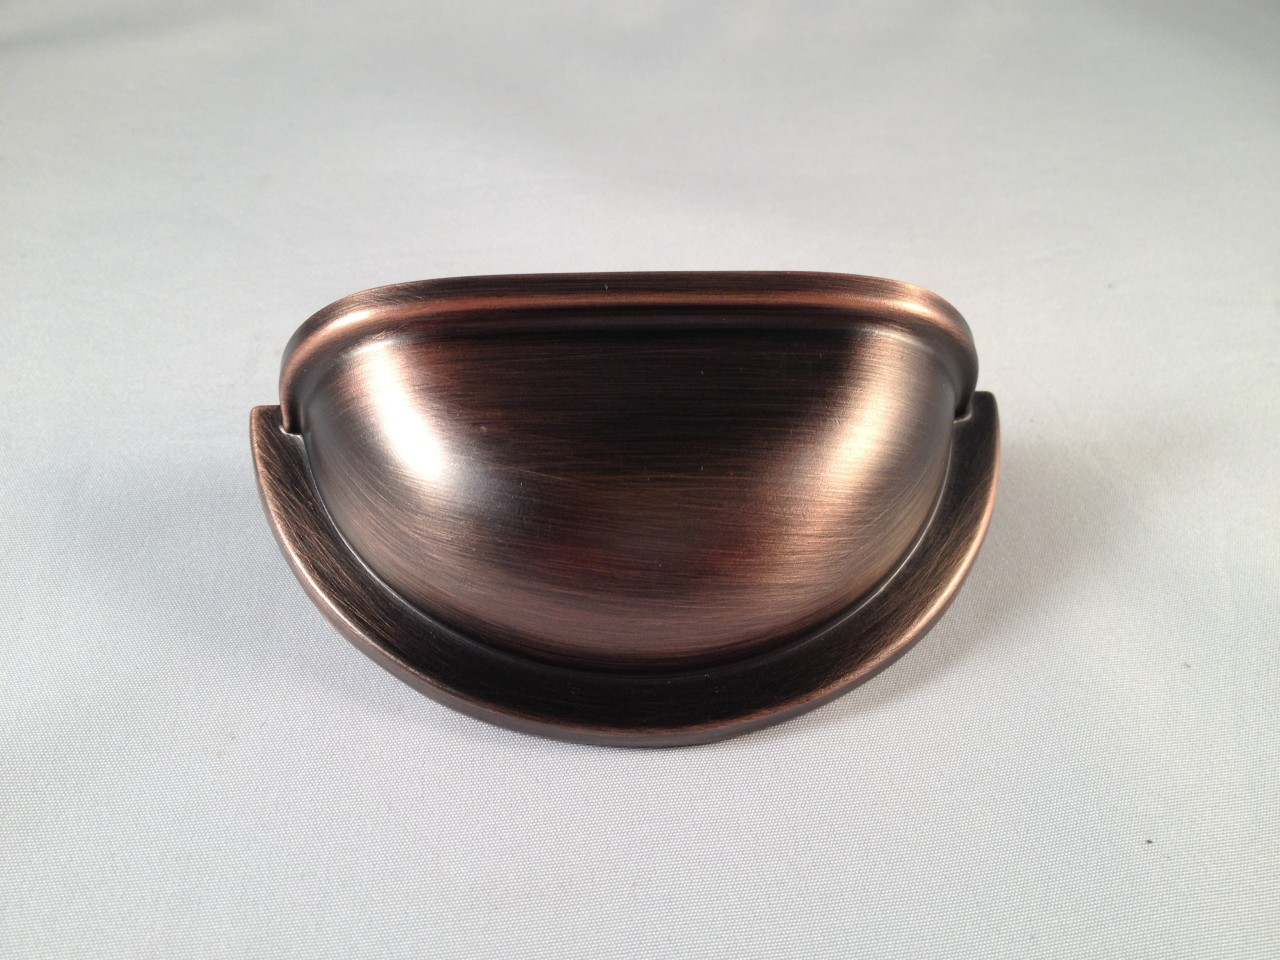 CUP PULL KITCHEN CABINET C C 3  ANTIQUE COPPER  eBay